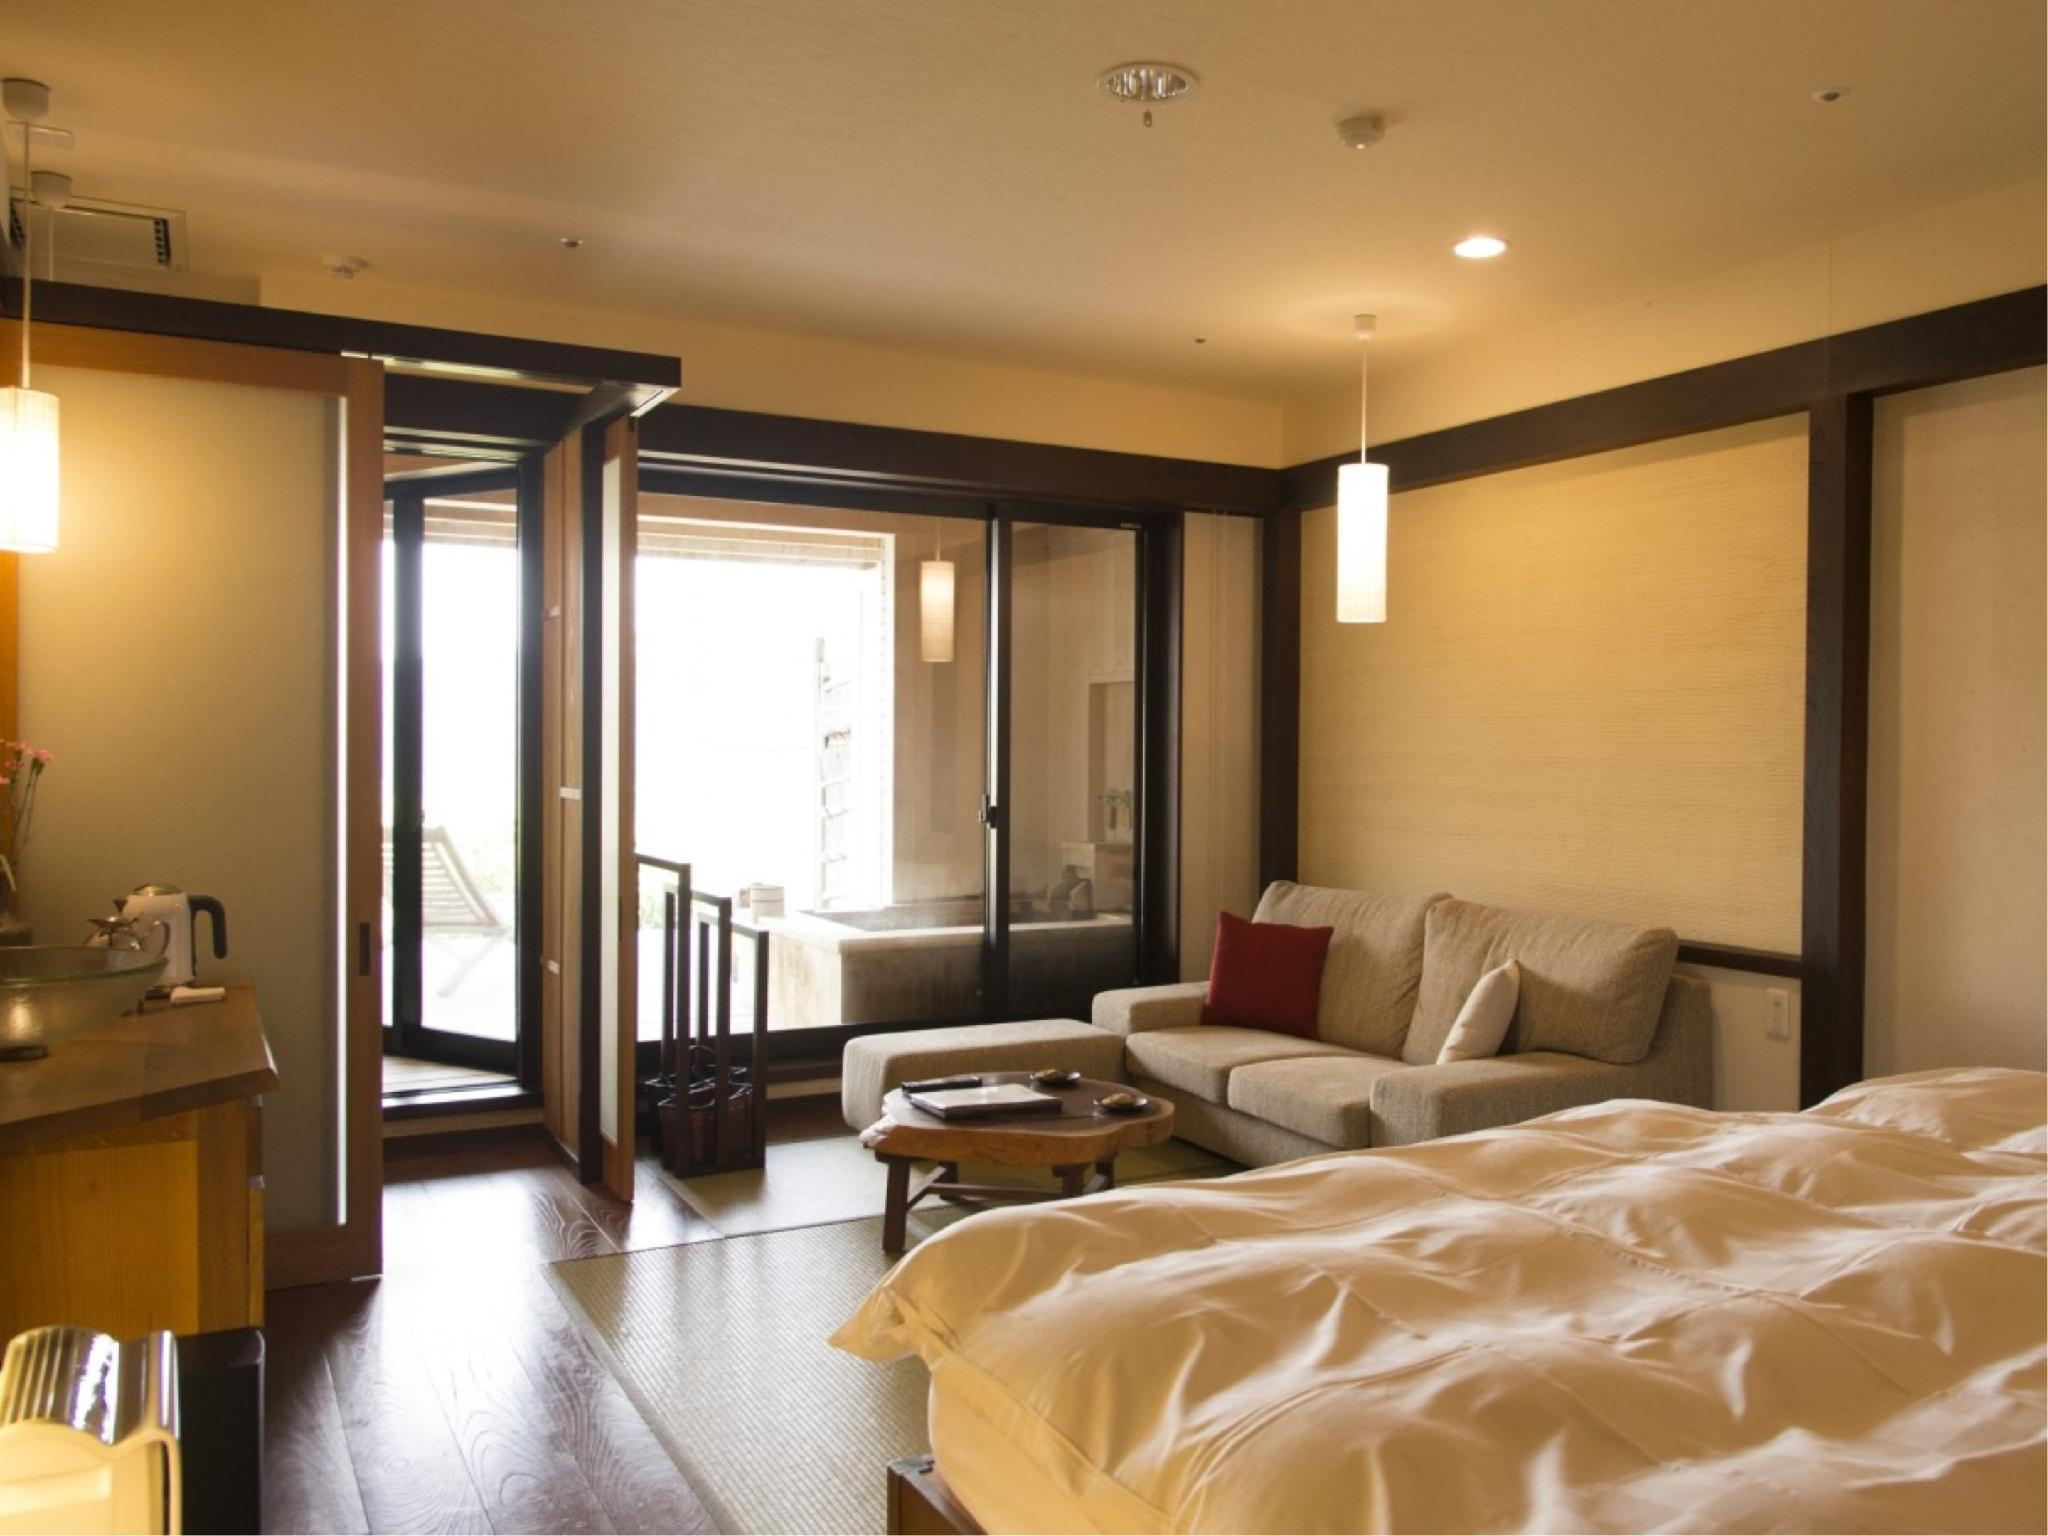 露天風呂付 和室ベッド(36平米)2F|10畳 (Japanese-style Room with Open-air Bath (with Beds))